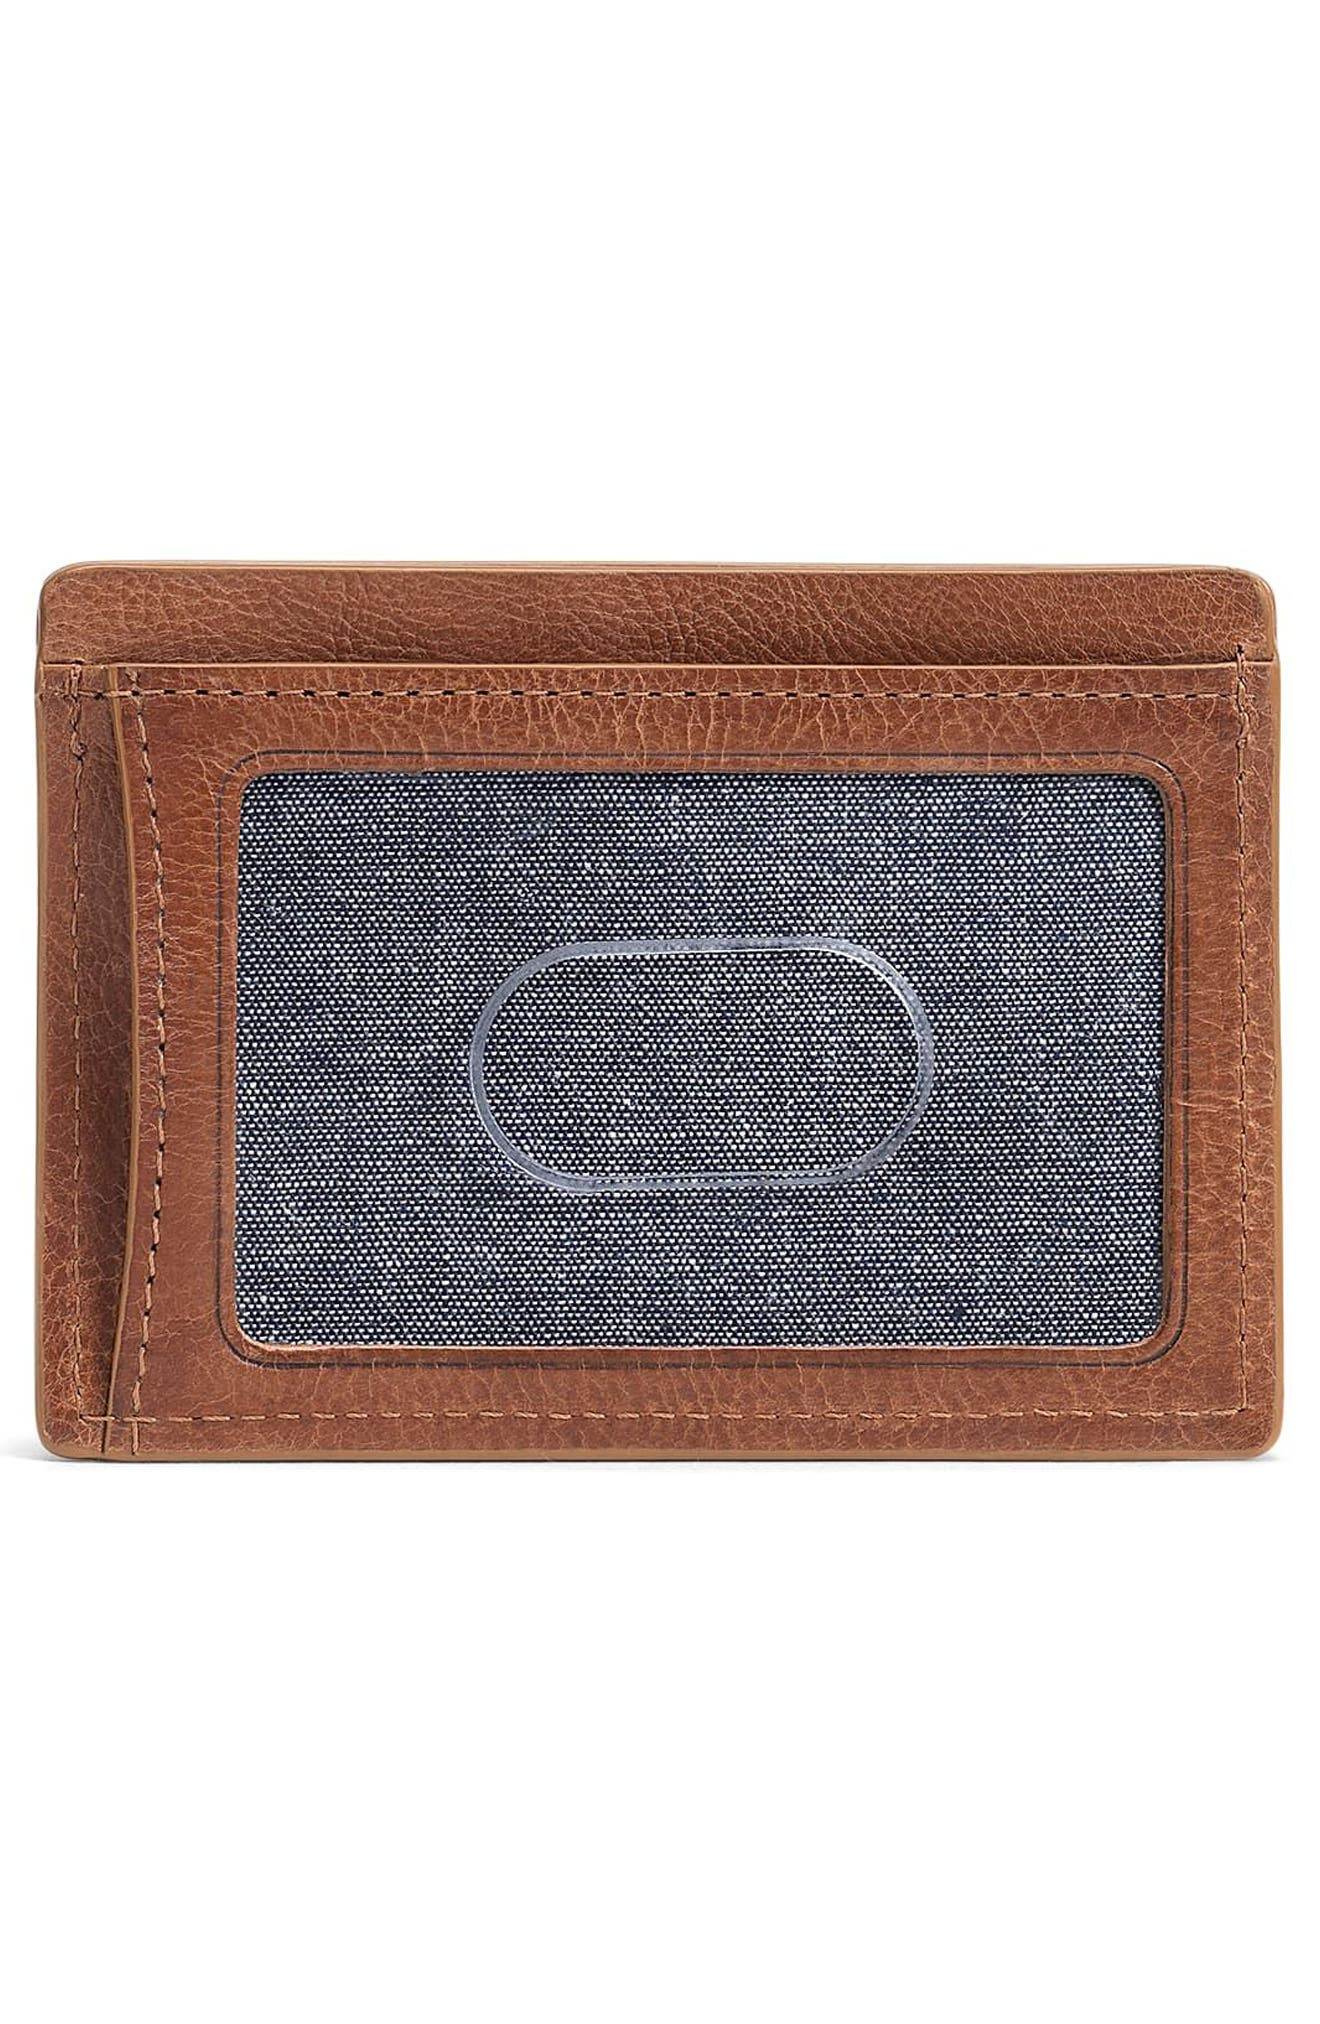 Canyon Leather Card Case,                             Alternate thumbnail 2, color,                             Tan